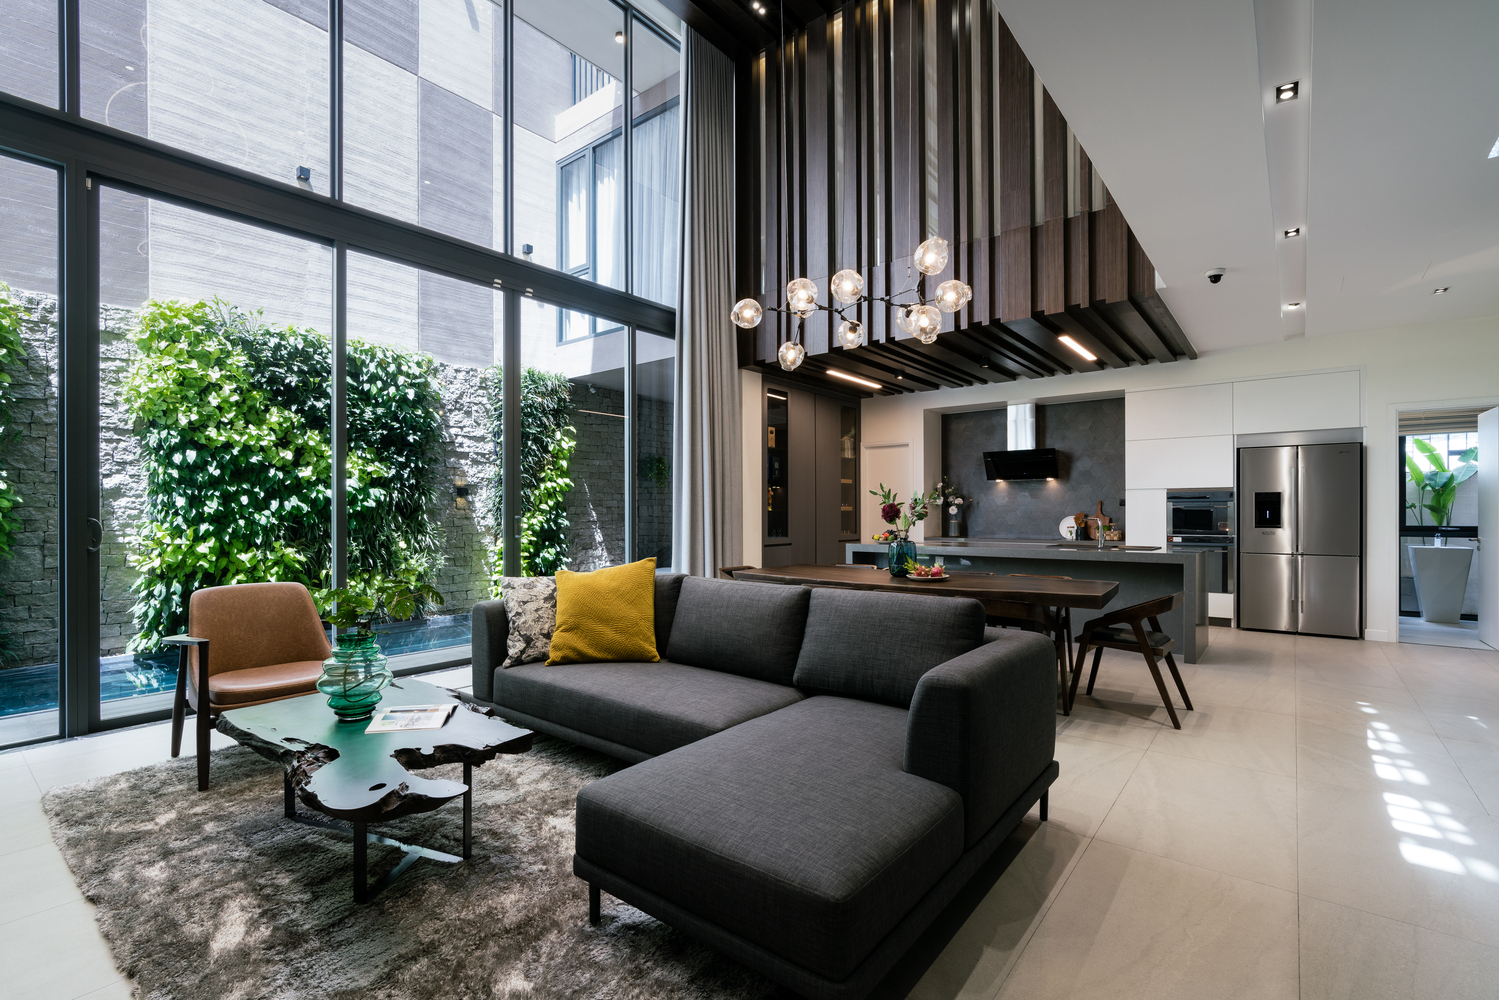 The living area is a double-height volume with a glazed facade facing the pool area